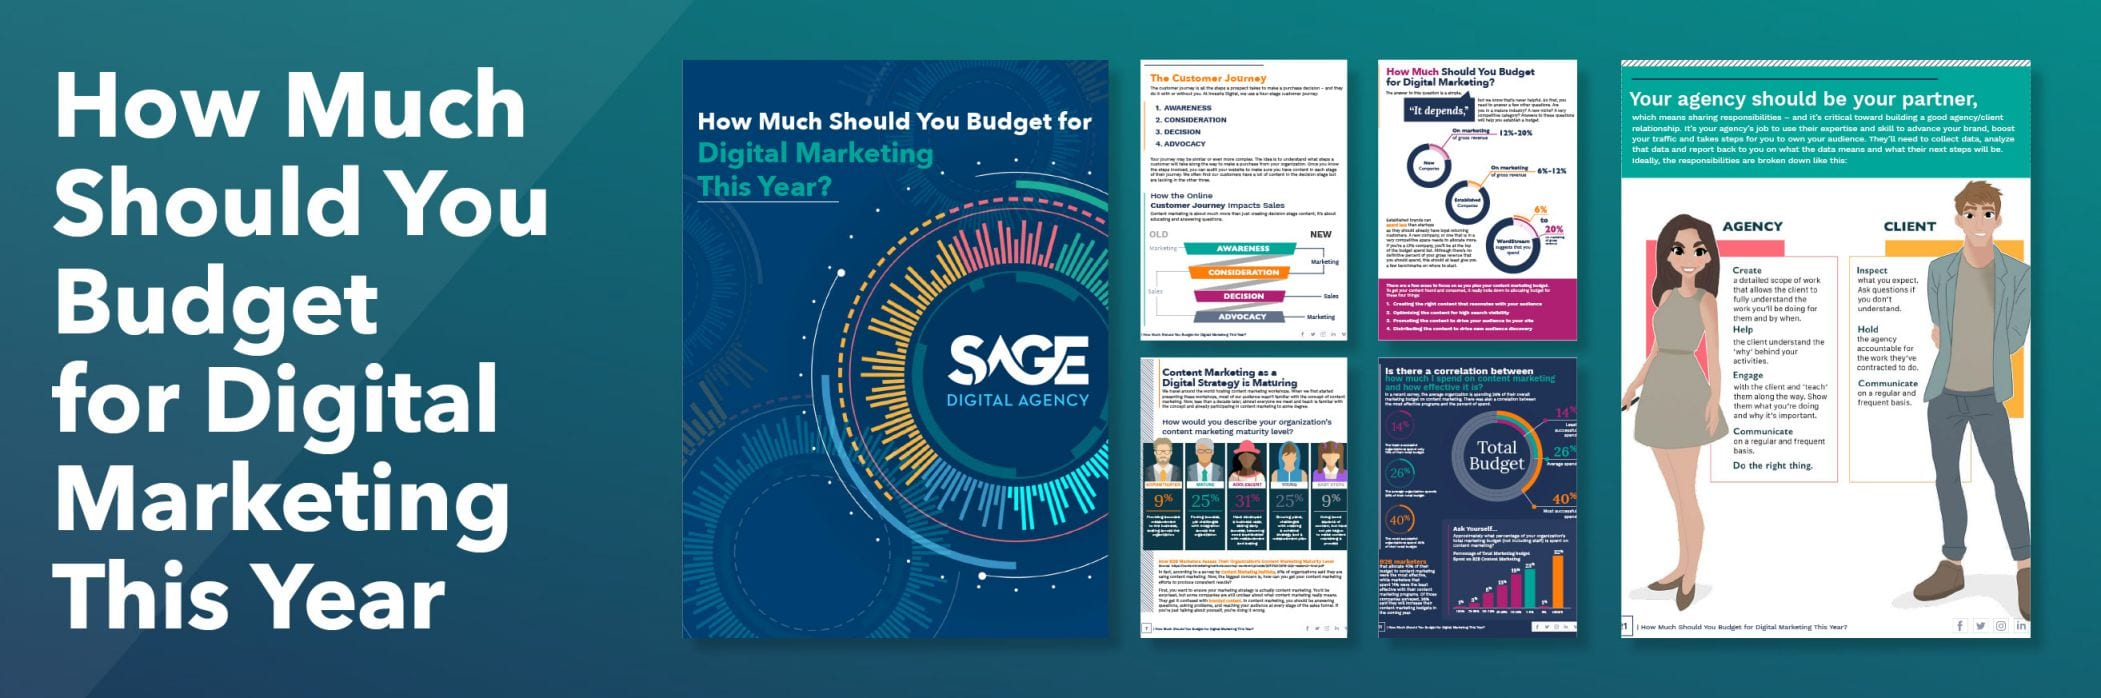 How Much Should You Budget for Digital Marketing This Year